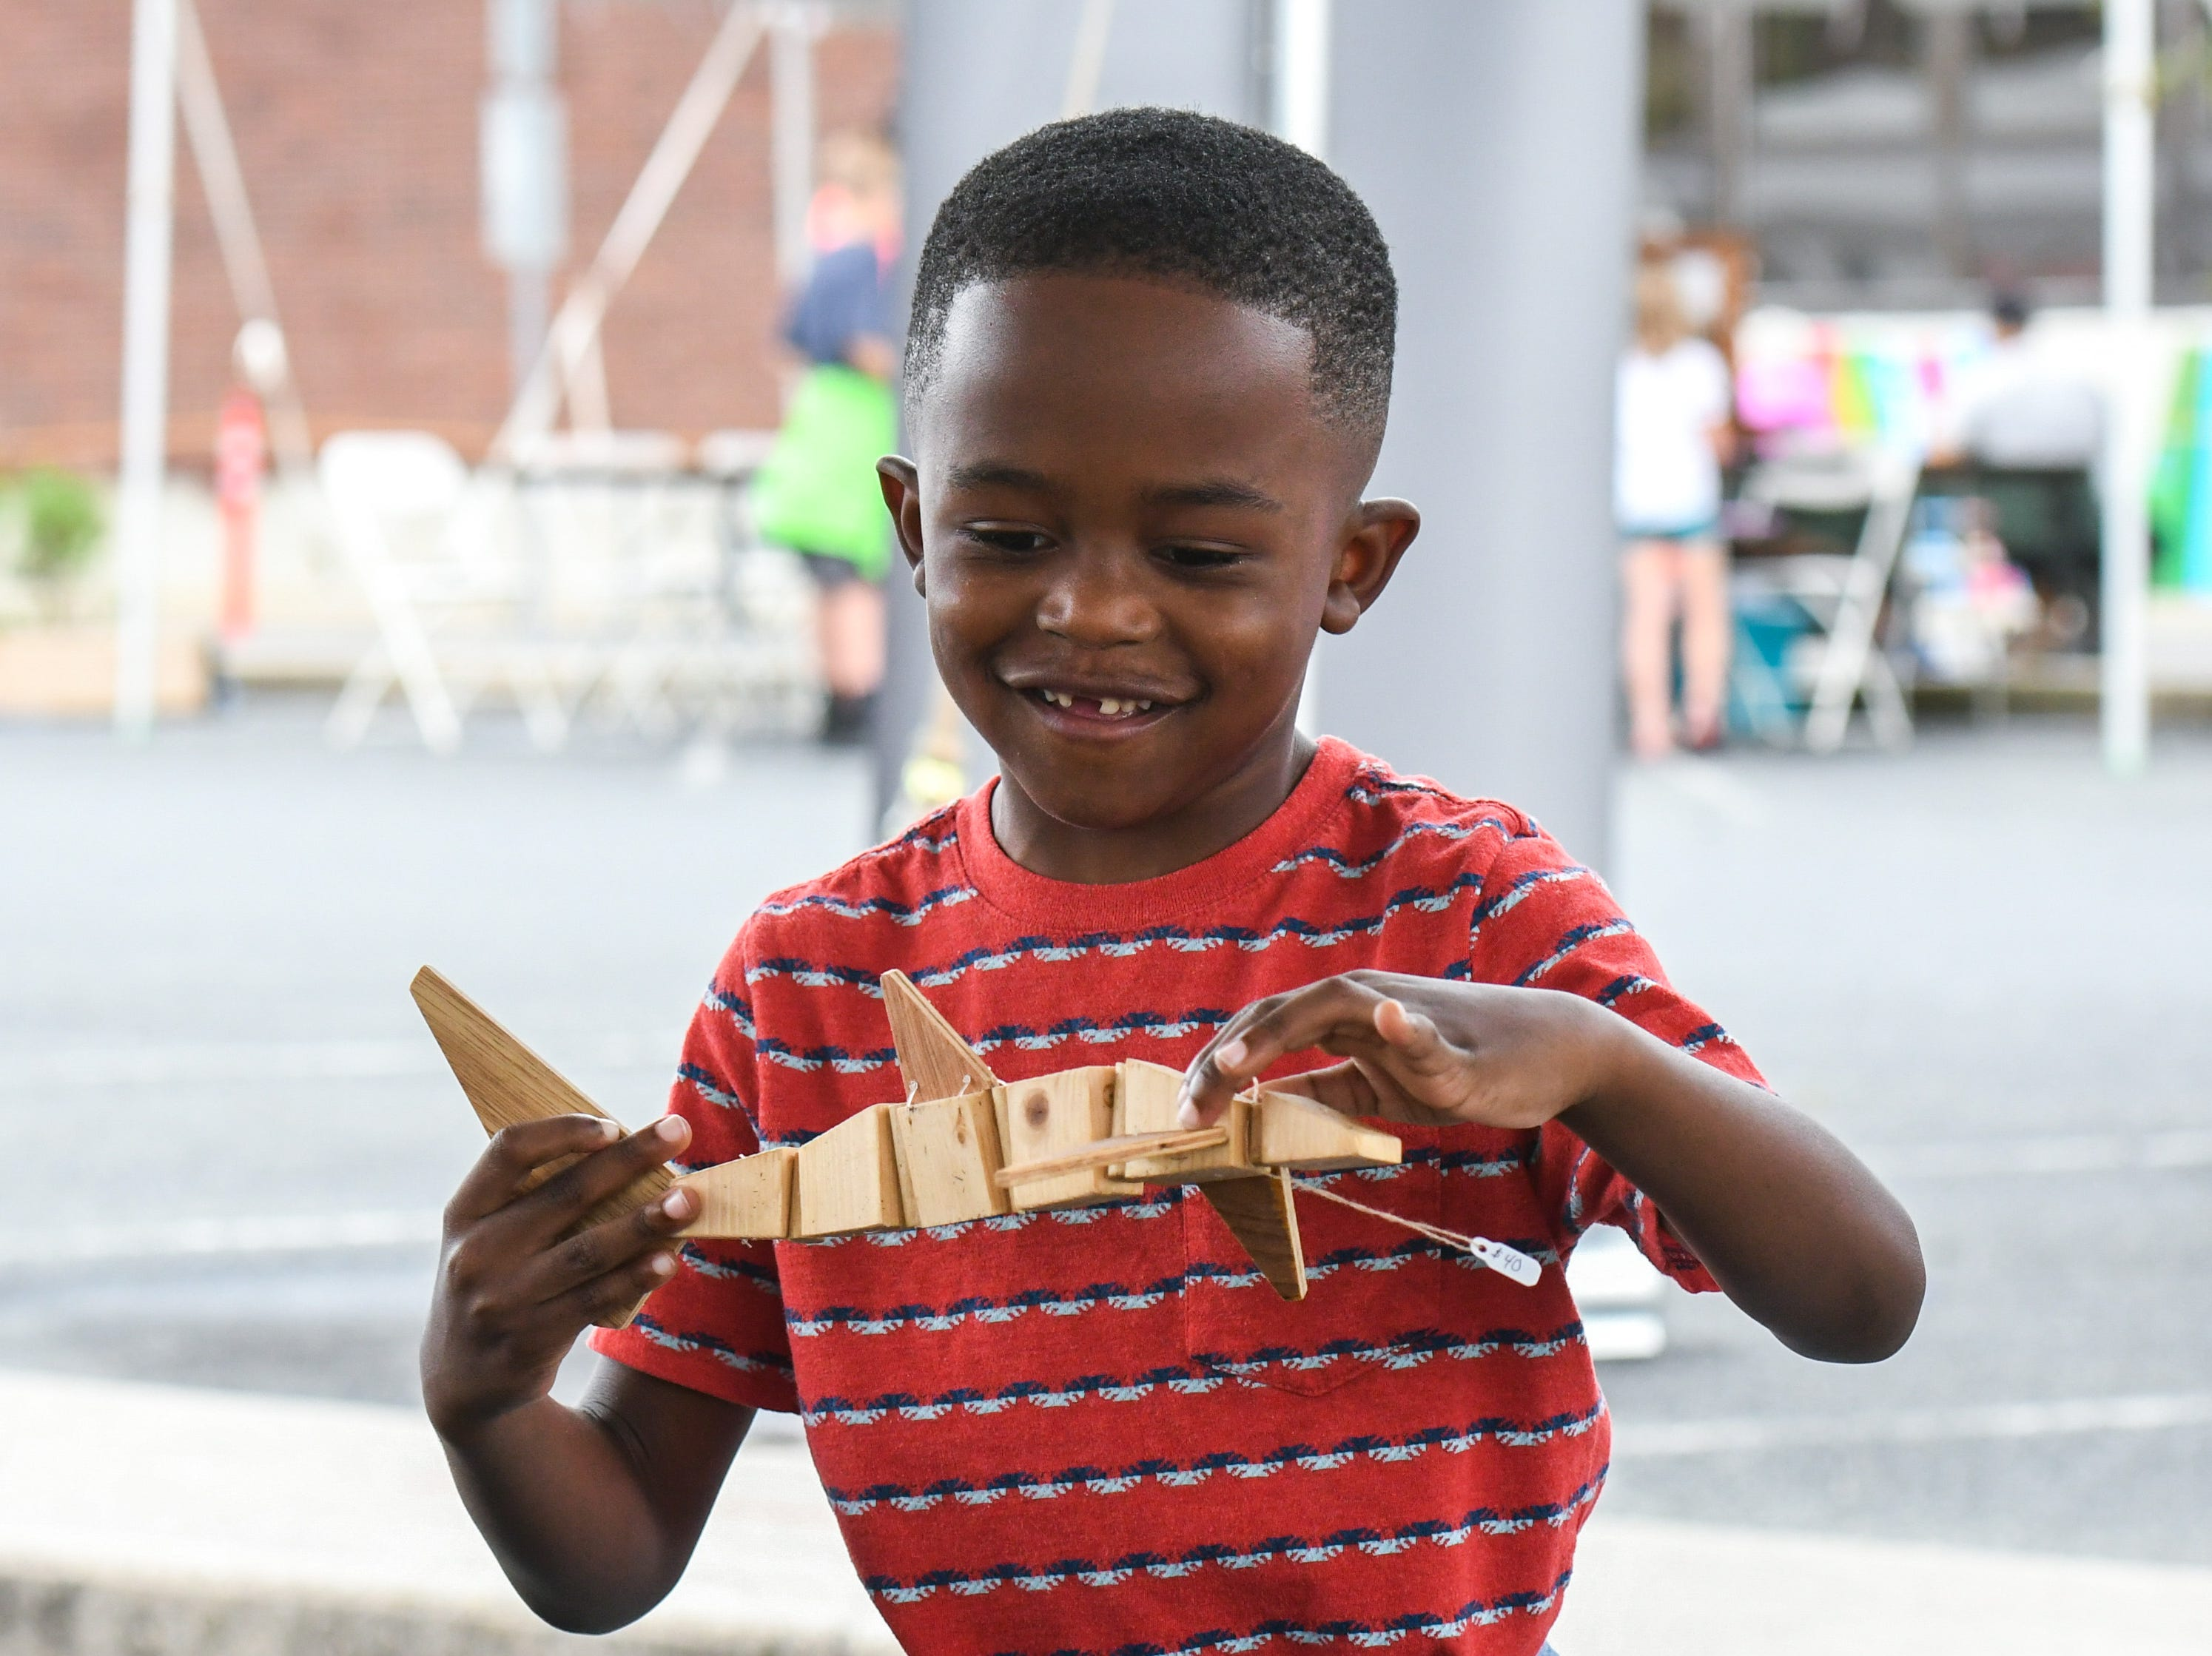 6-year-old Carter McCoy checks out one of the Jeghetto group's puppets at the National Folk Festival in Salisbury on Saturday, Sept. 8.